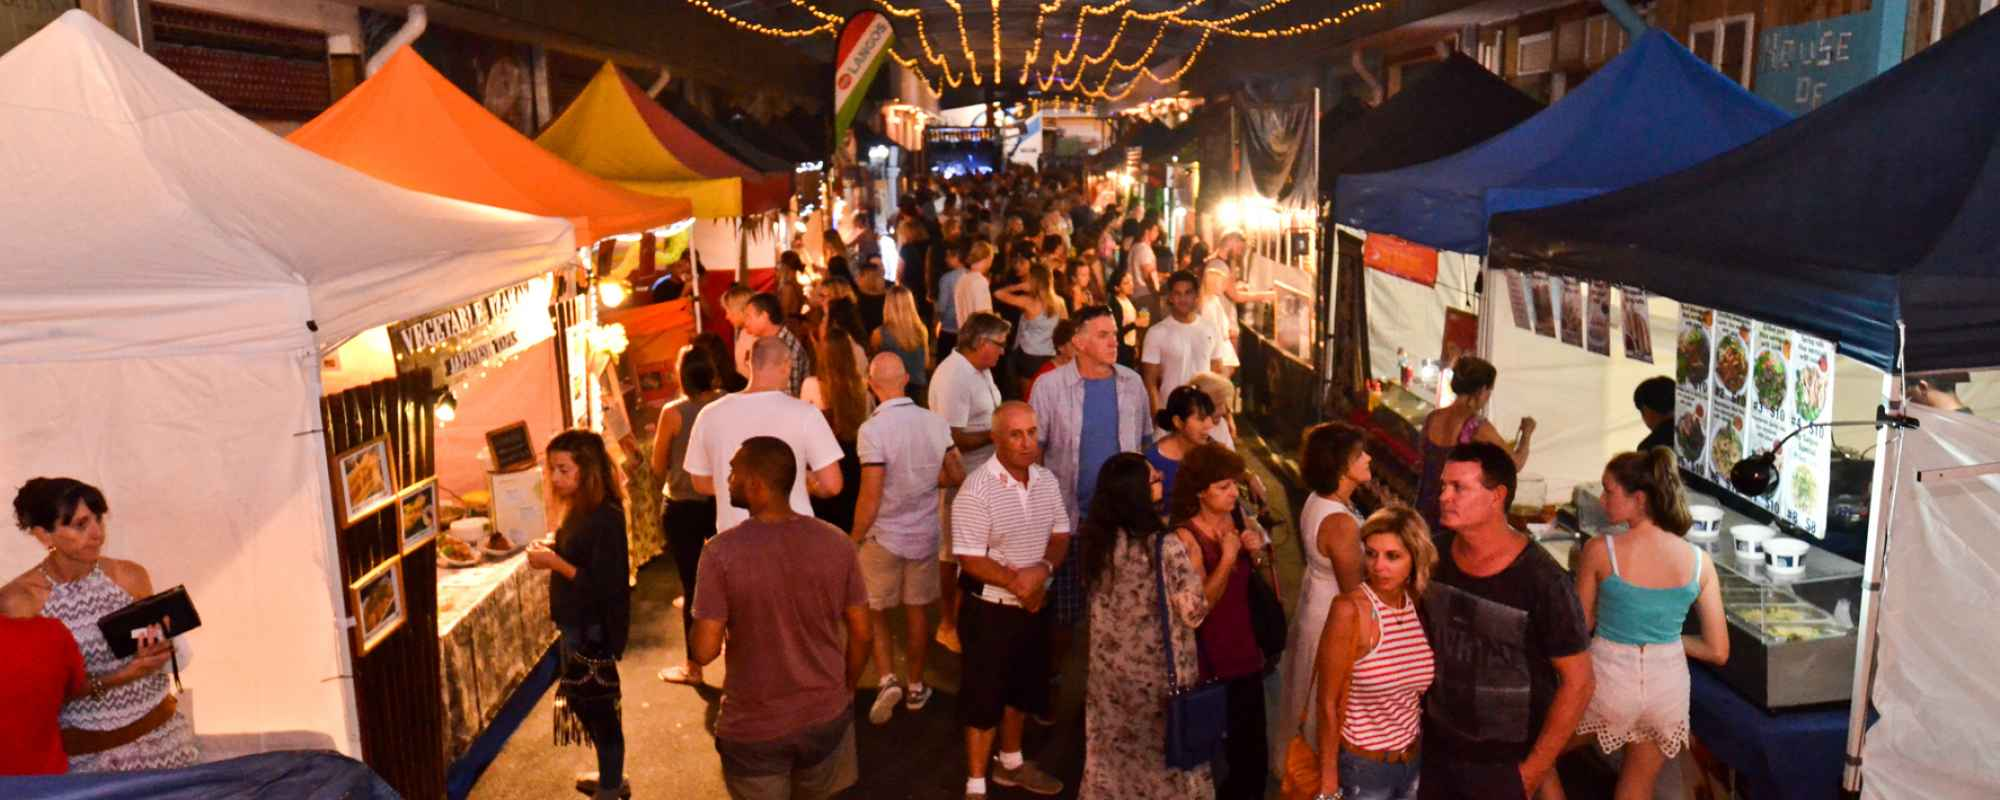 Miami Marketta Street Food and live music